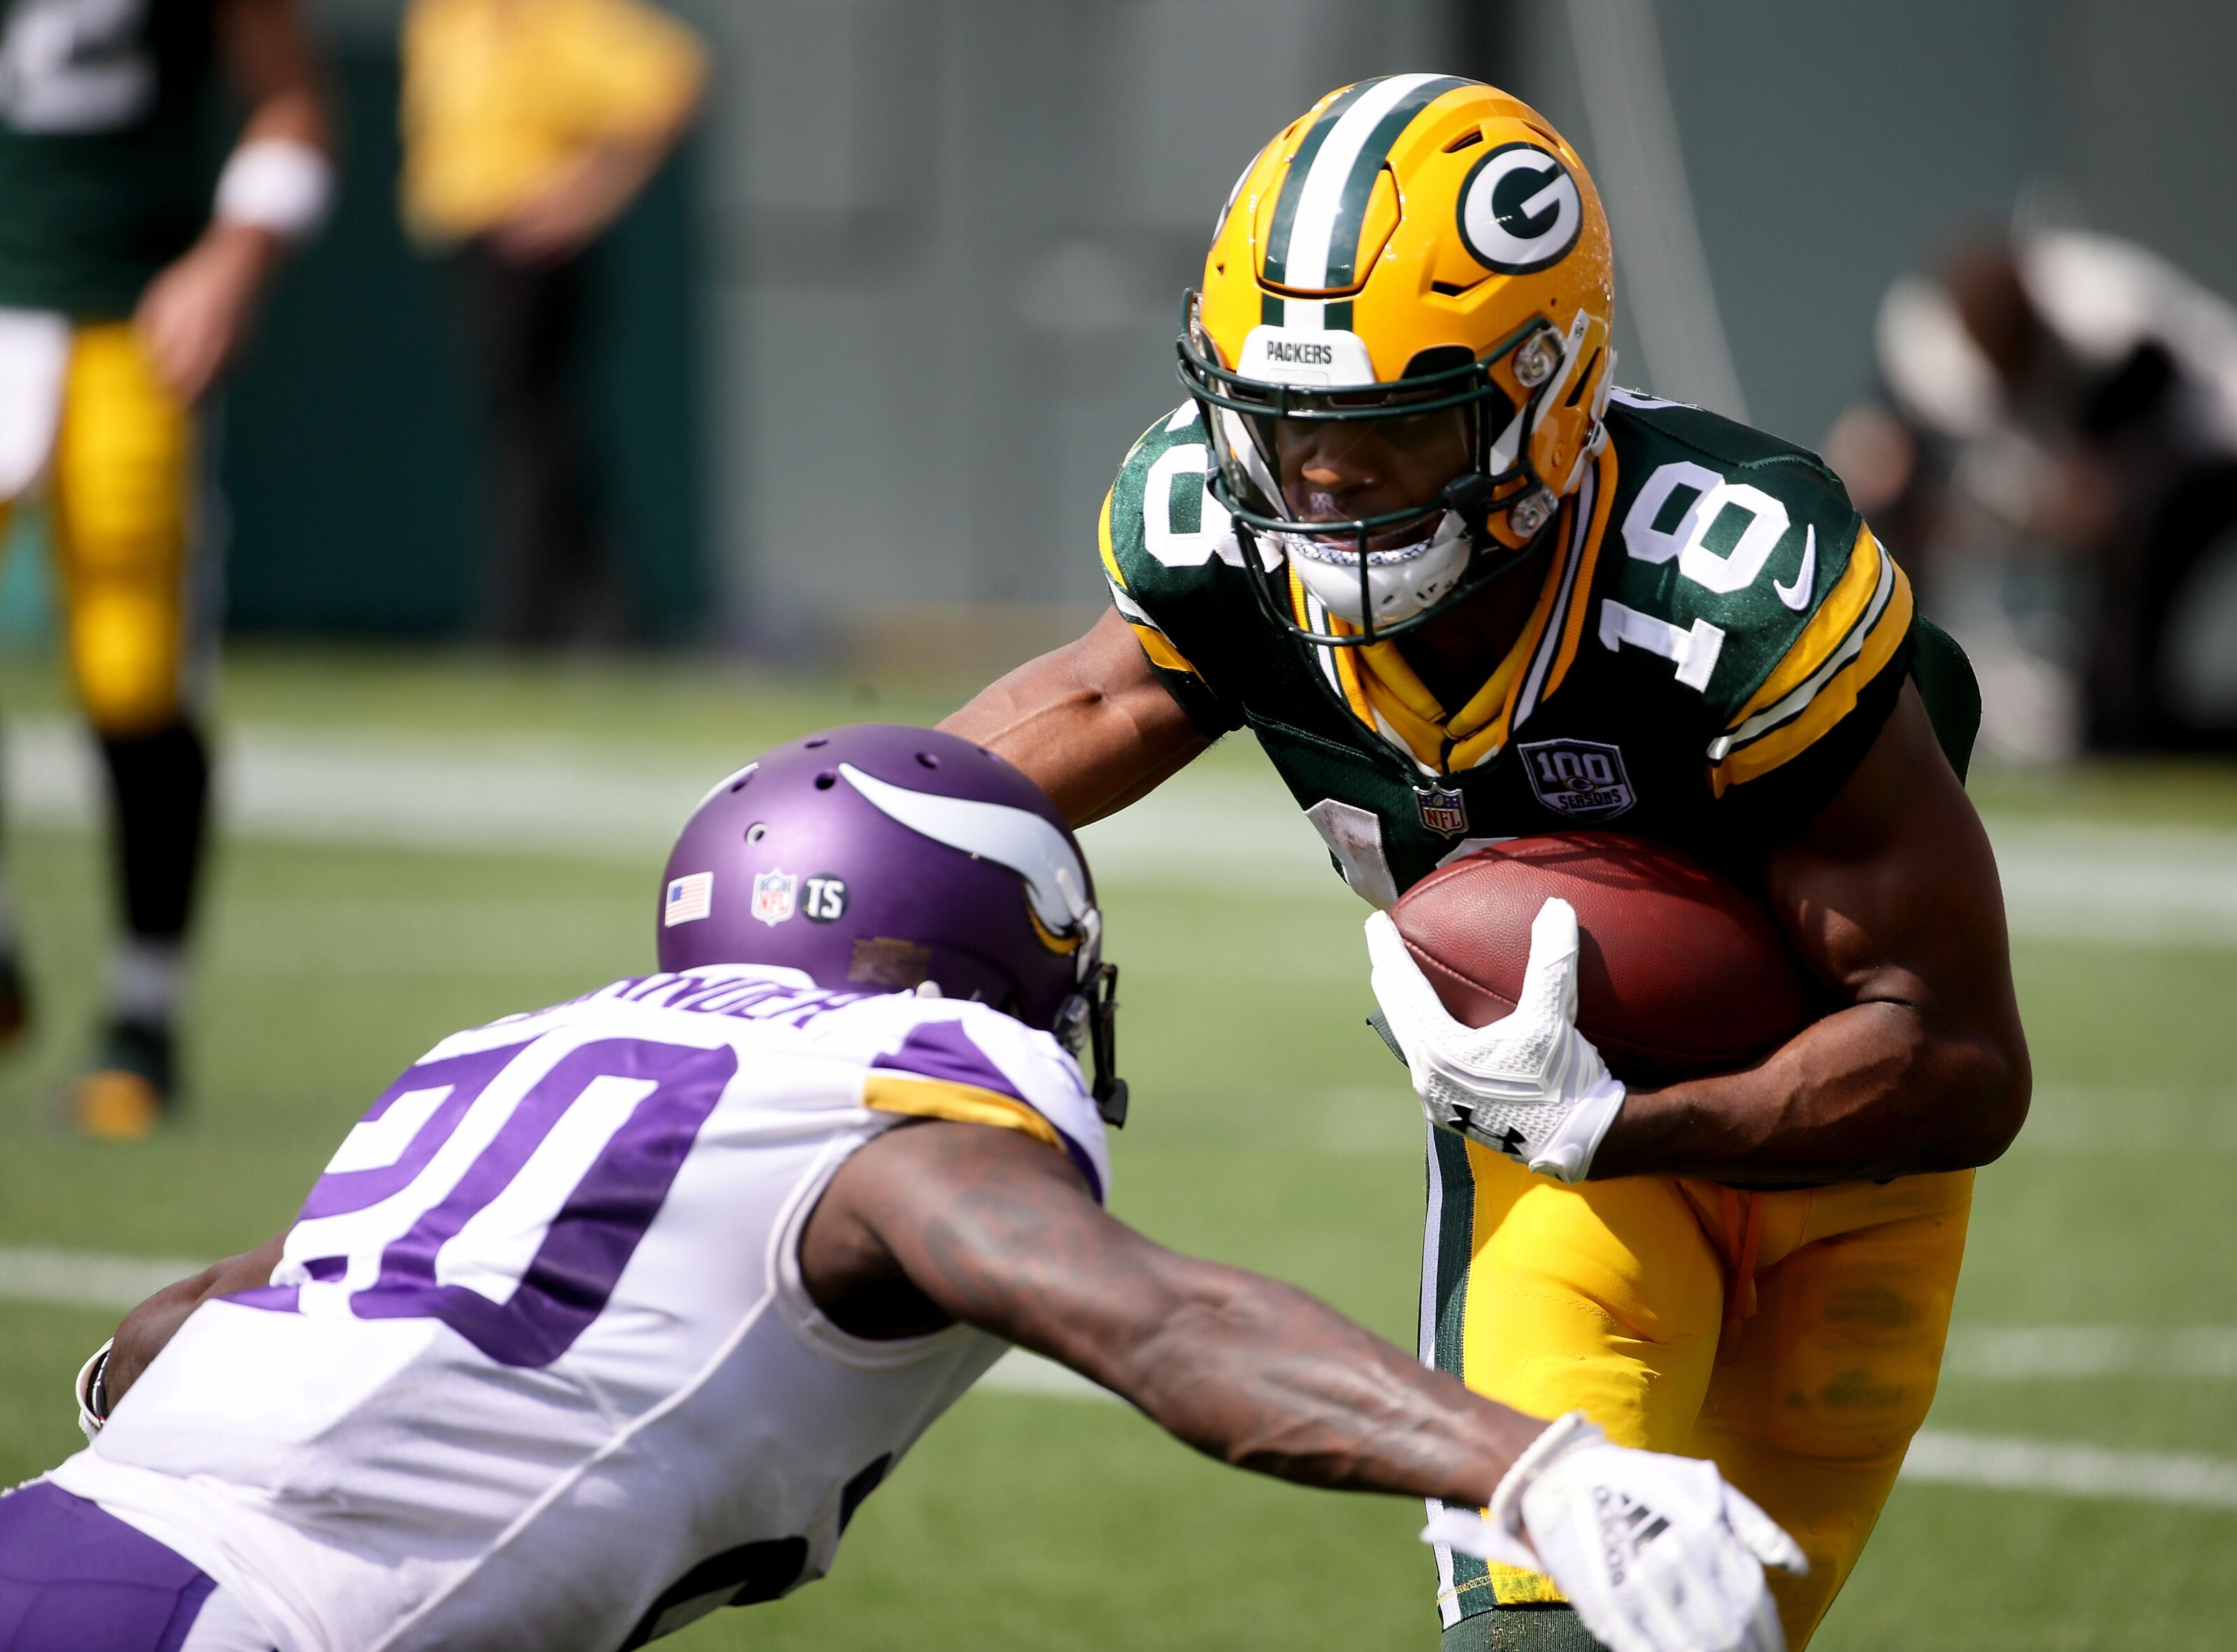 Packers News: Impact of losing Cobb and Allison, offseason needs